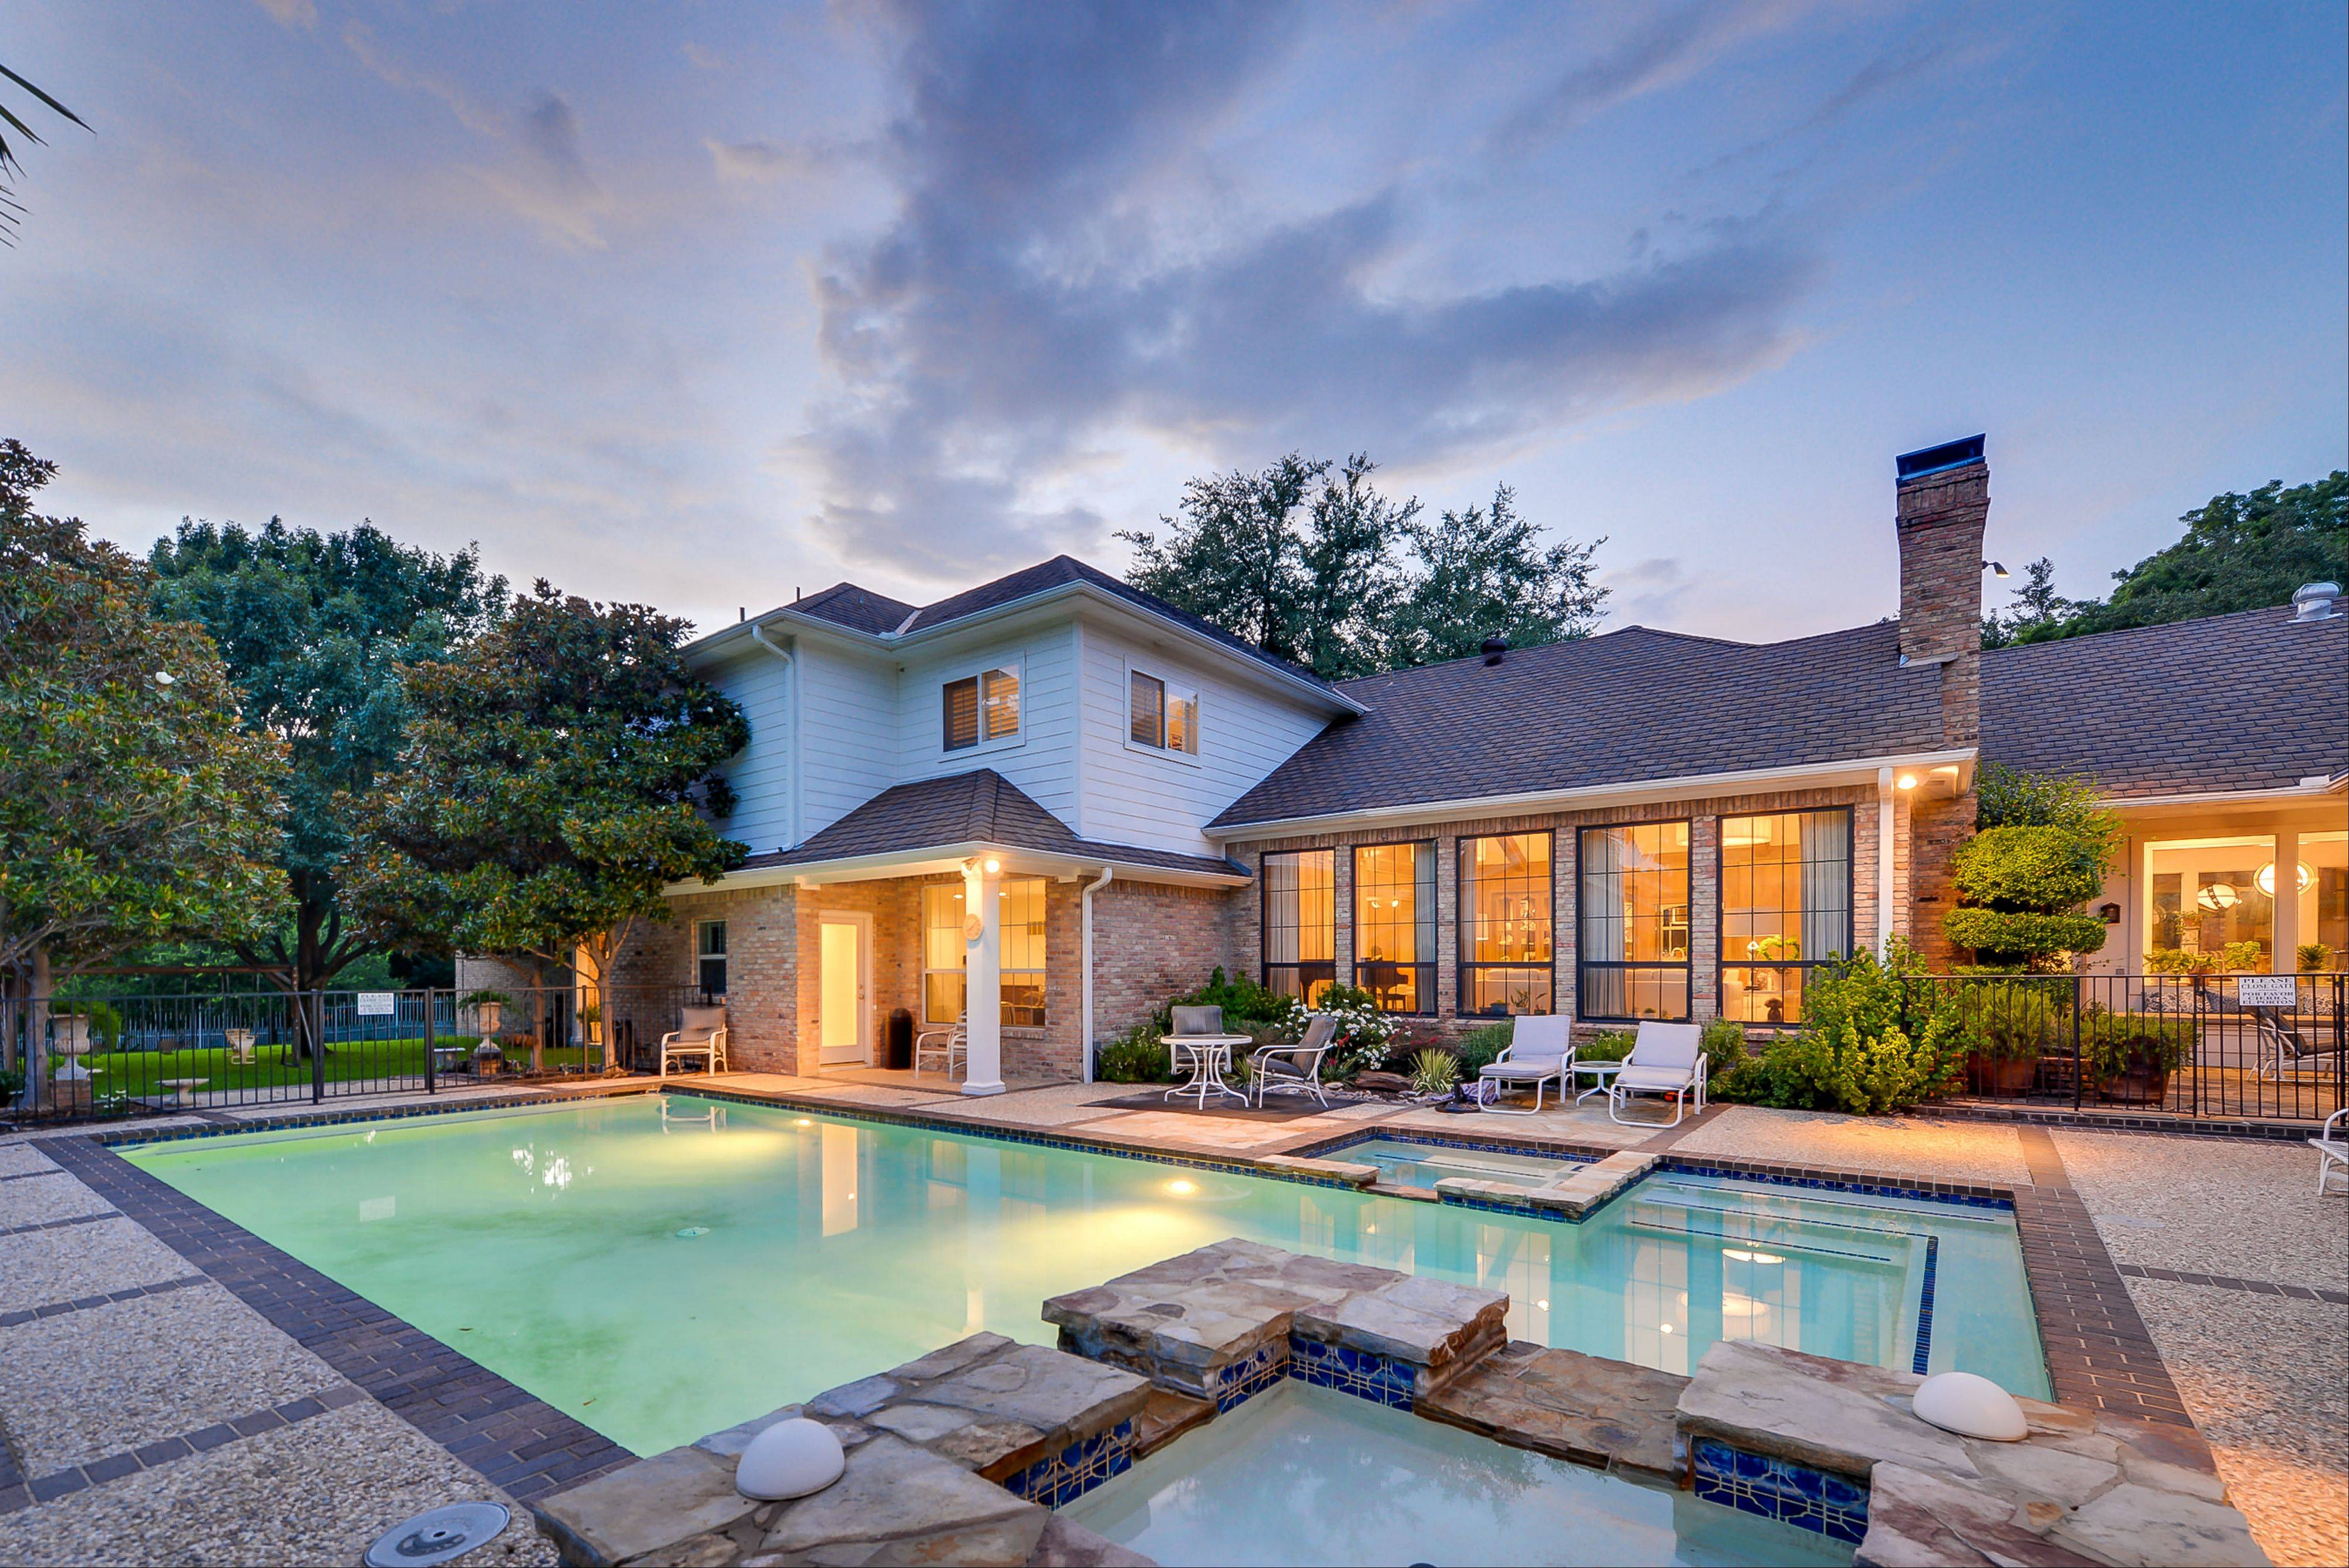 The home featured as Texas Ranger Cordell Walker�s house from the former television series �Walker, Texas Ranger� is on the market for $1.2 million. The seven-bathroom and four-bedroom has been extensively renovated since the show ended in 2001.